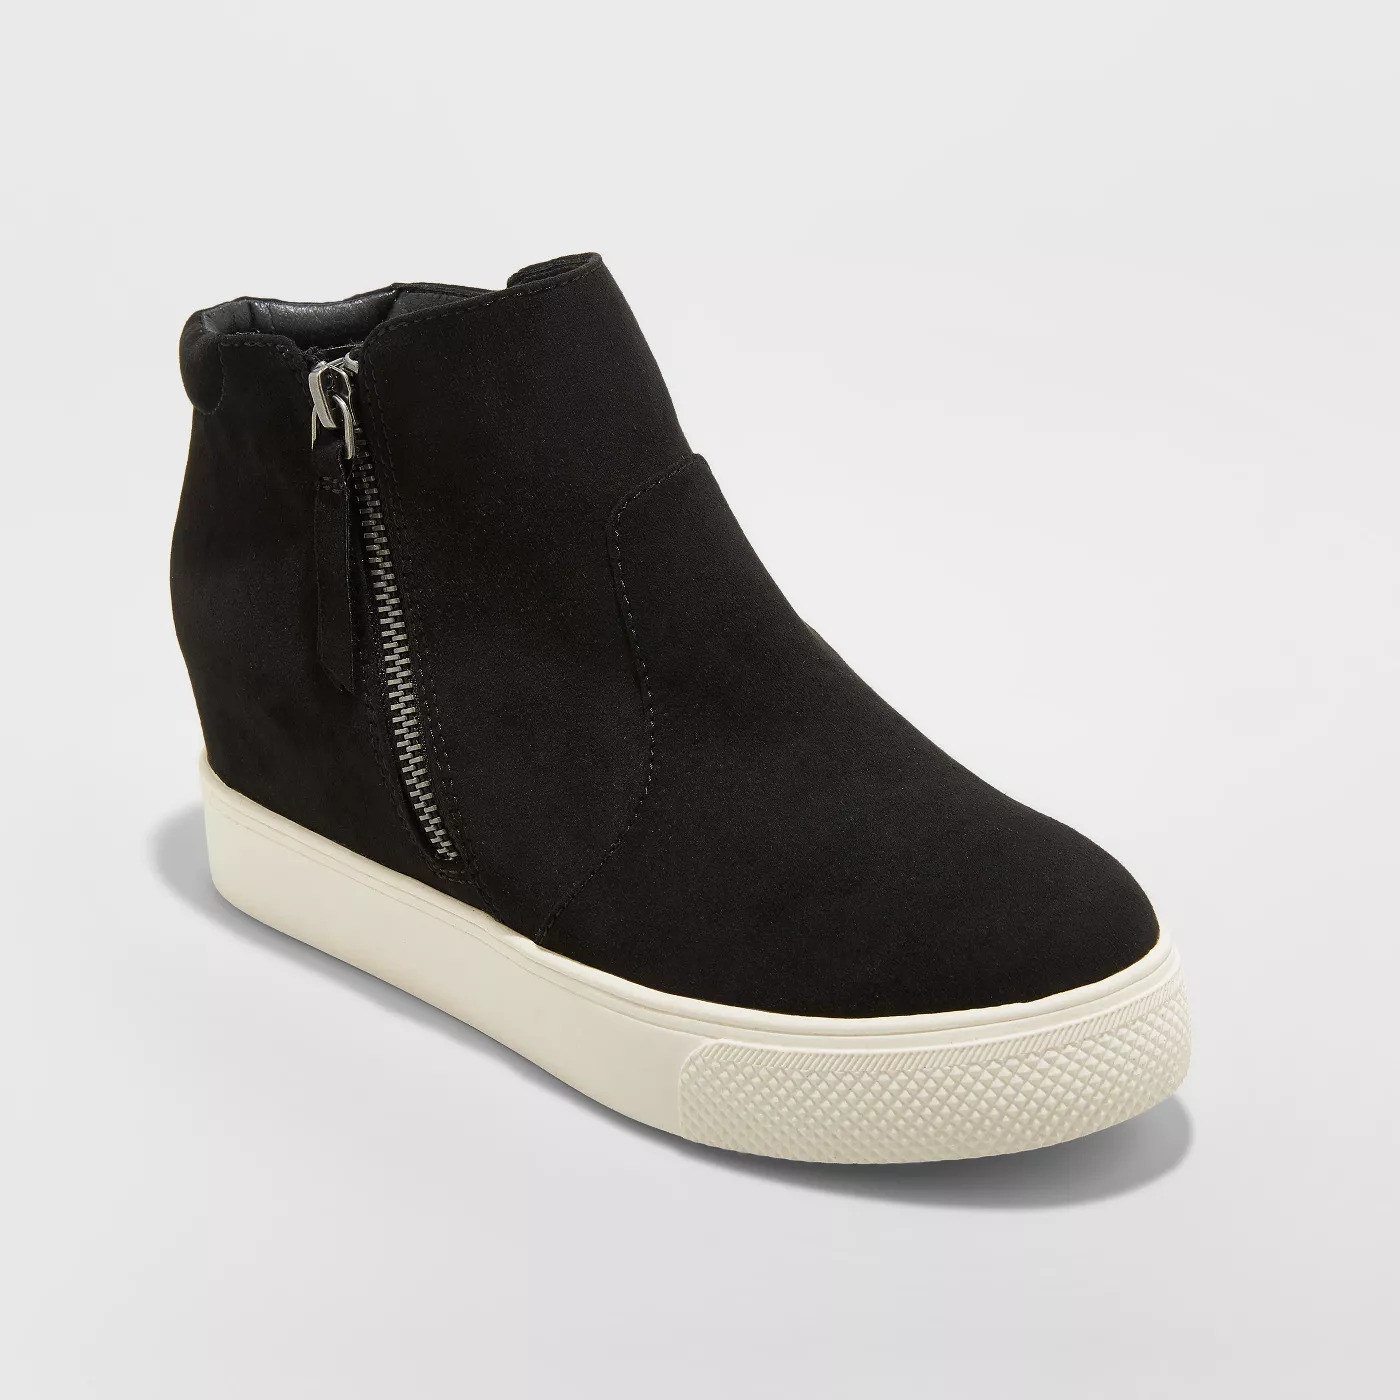 A black high top sneaker with a flat rubber sole and zipper on the side